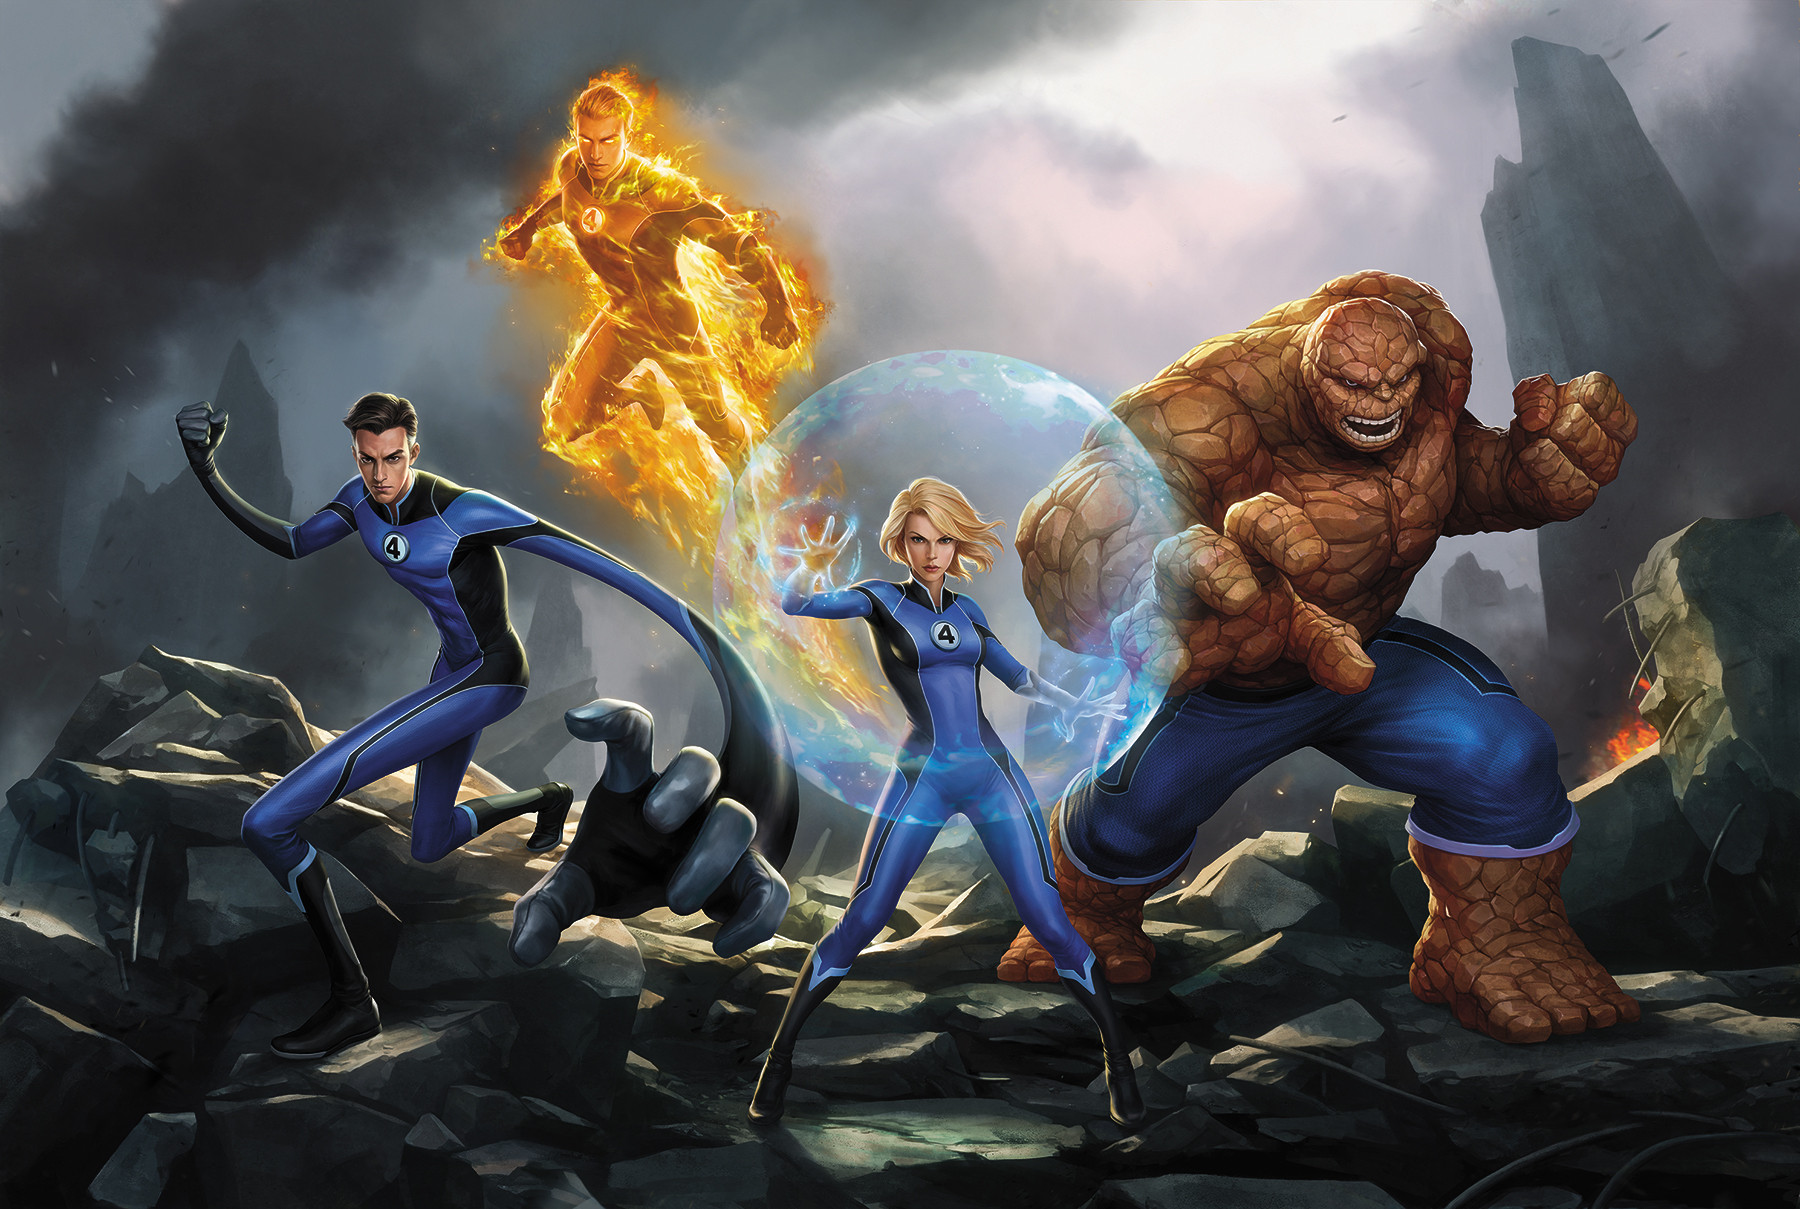 Marvel_Fantastic4_By YinYuming.jpg